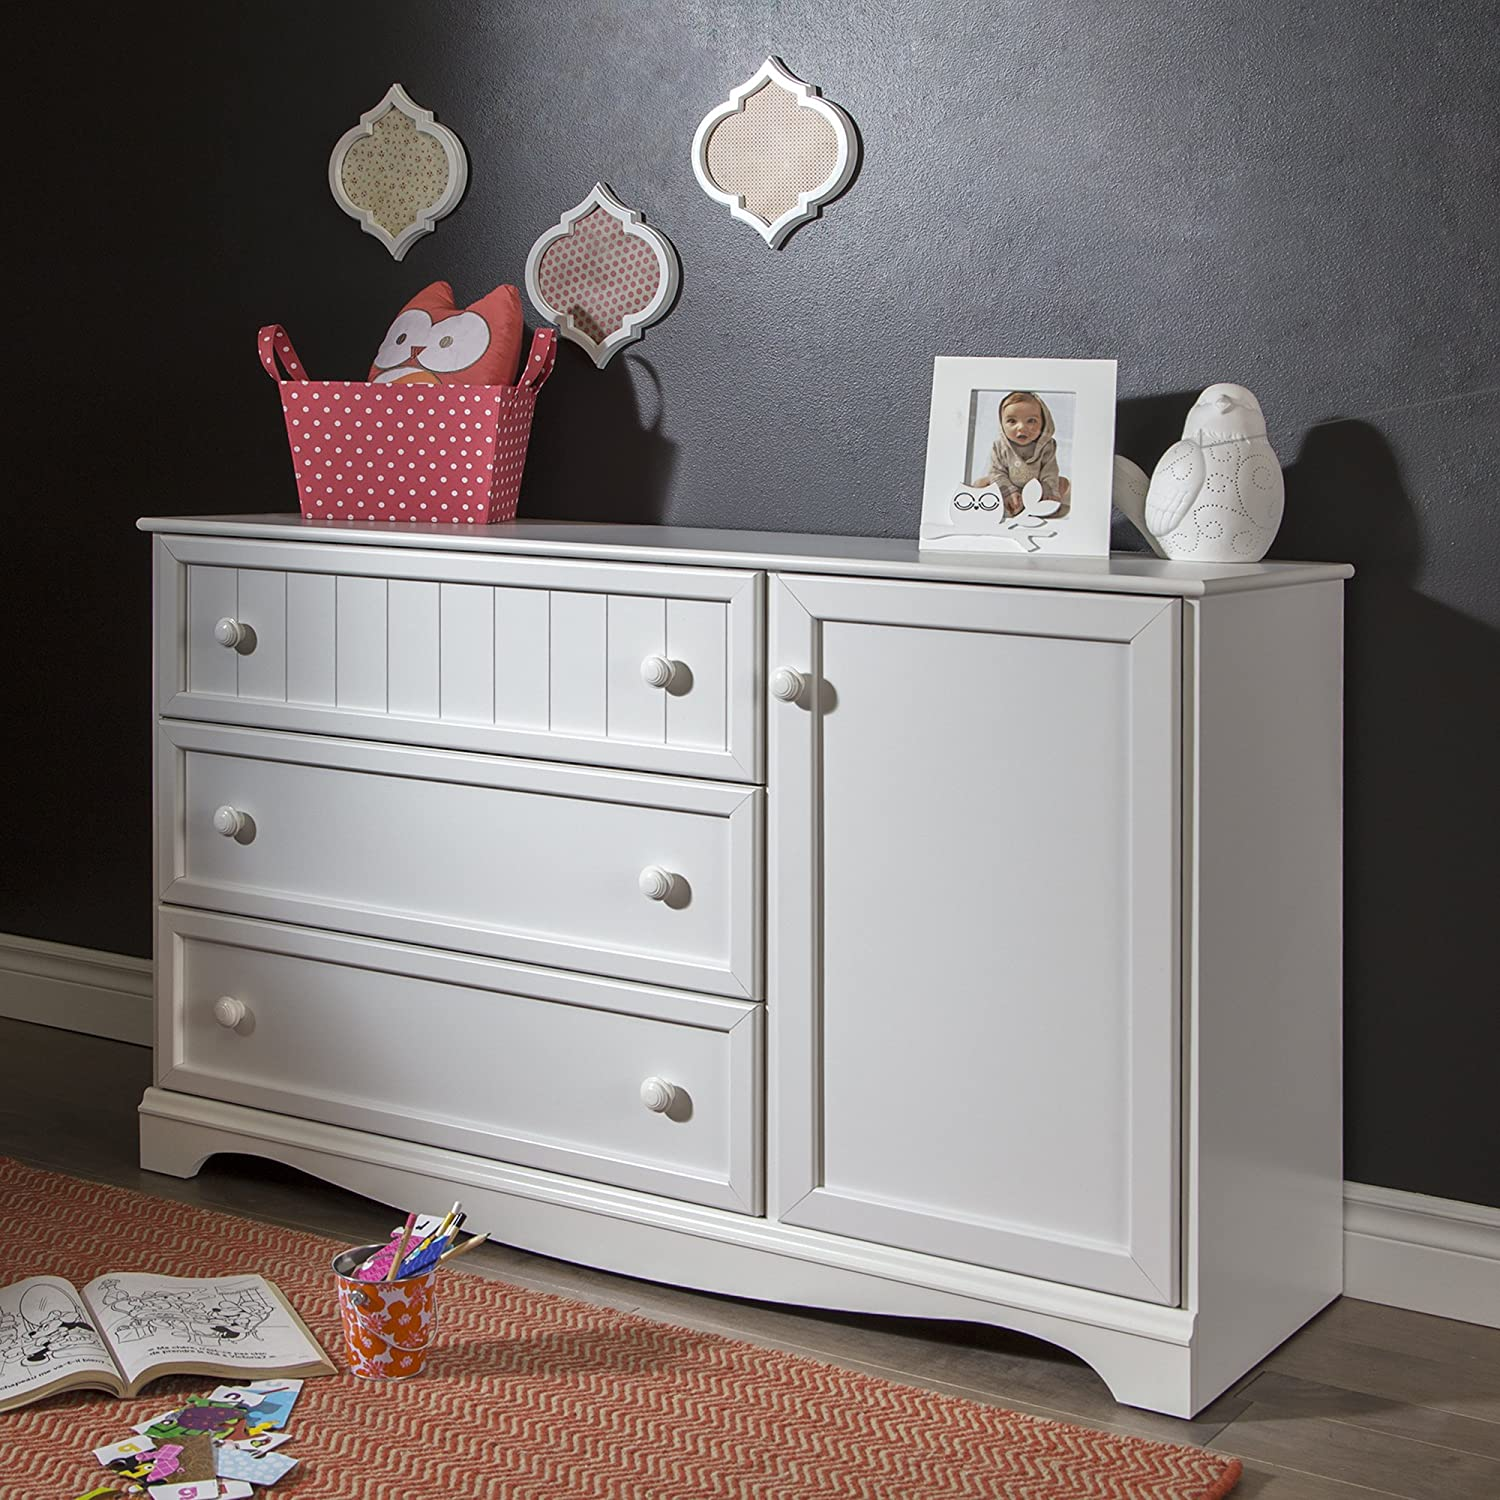 Good Amazon.com: South Shore Savannah 3 Drawer Dresser With Door, Pure White:  Kitchen U0026 Dining Nice Design